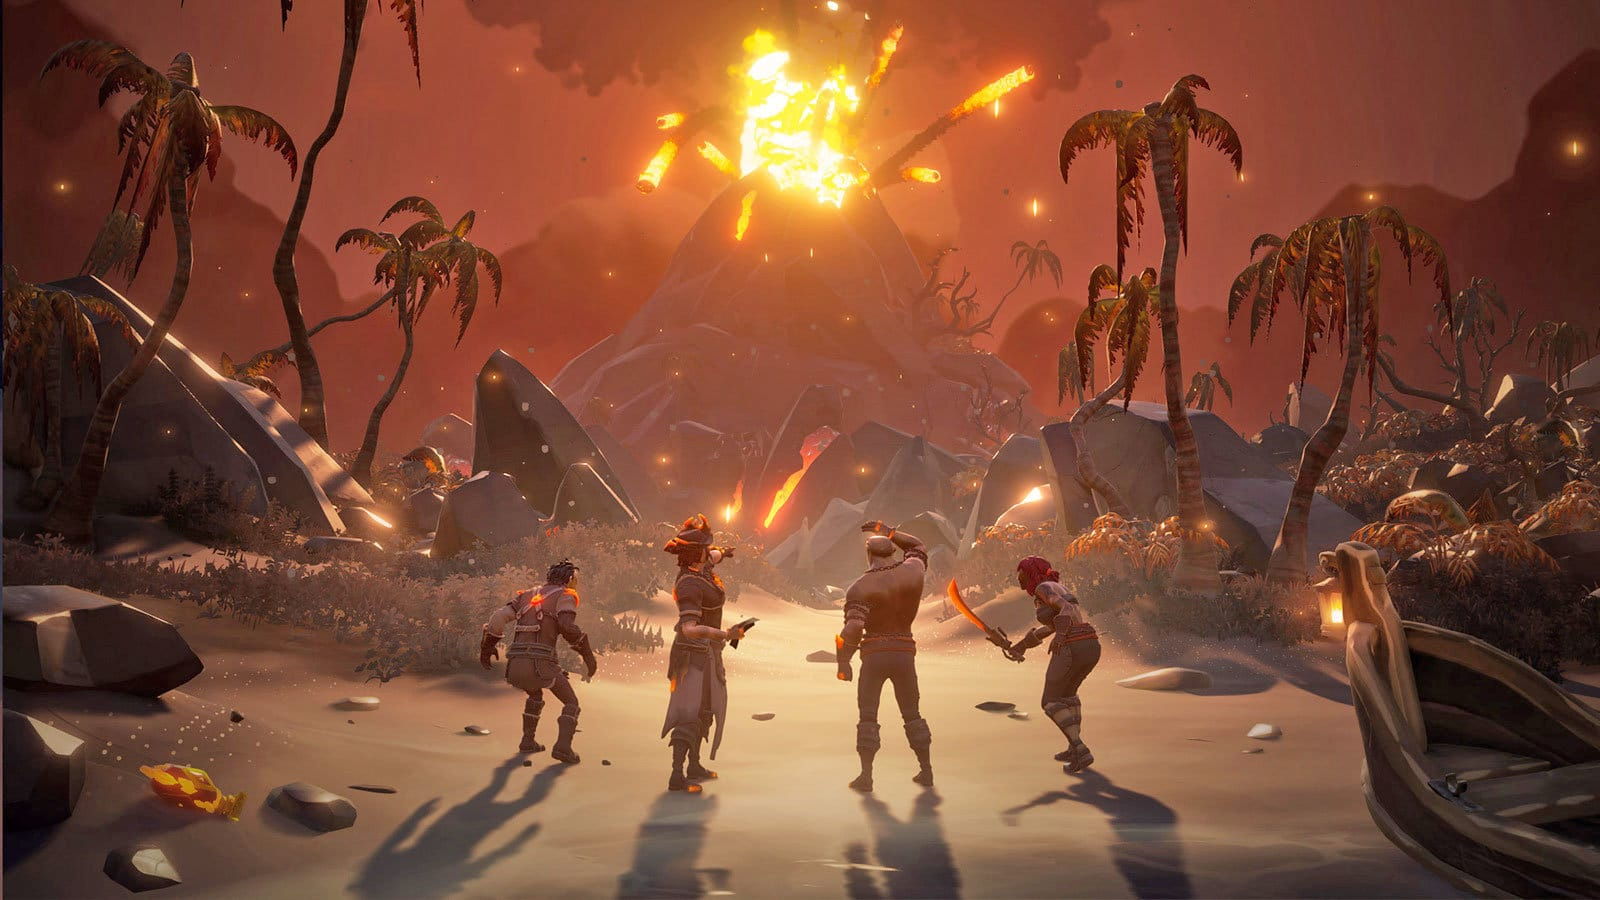 Sea of Thieves' is free this week, if you have friends